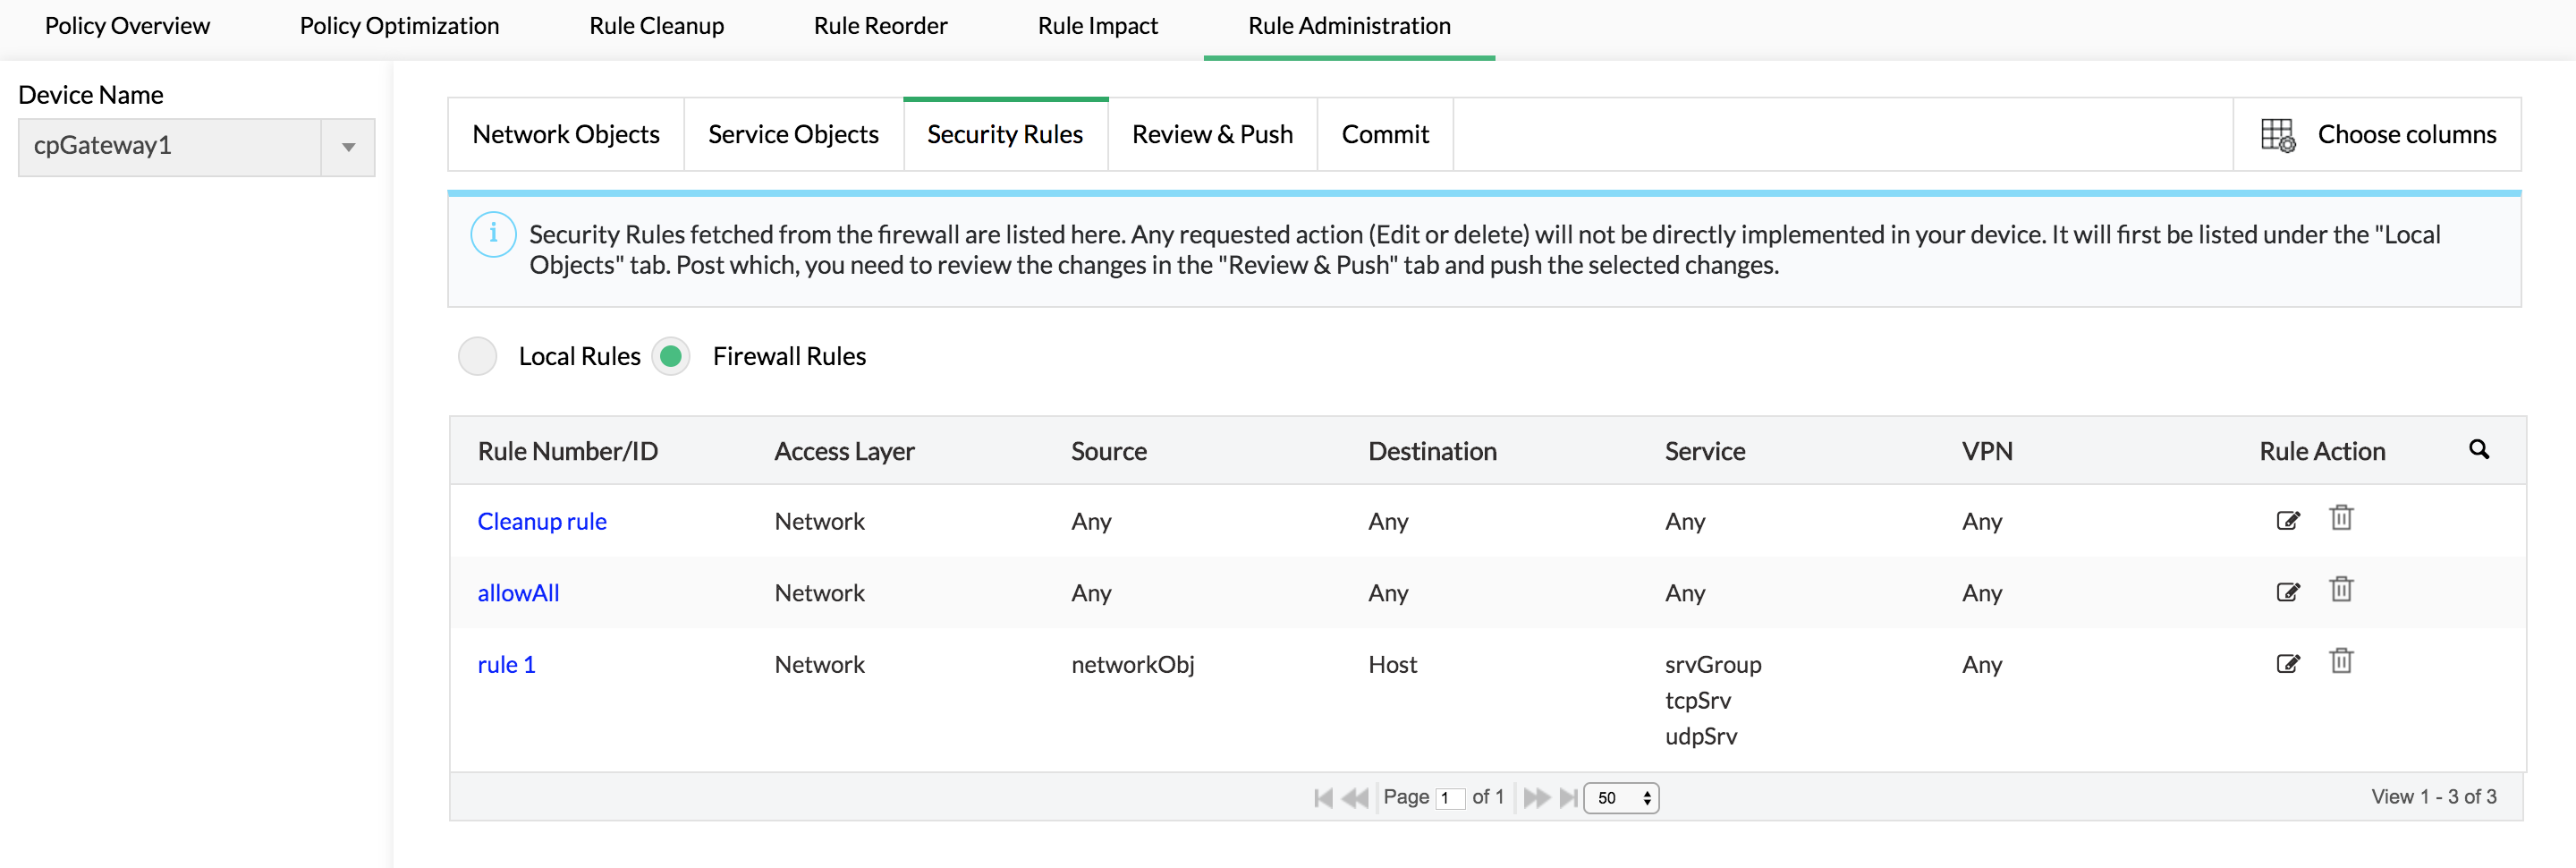 Administer firewall rules & policies - Configure firewall rules ManageEngine Firewall Analyzer